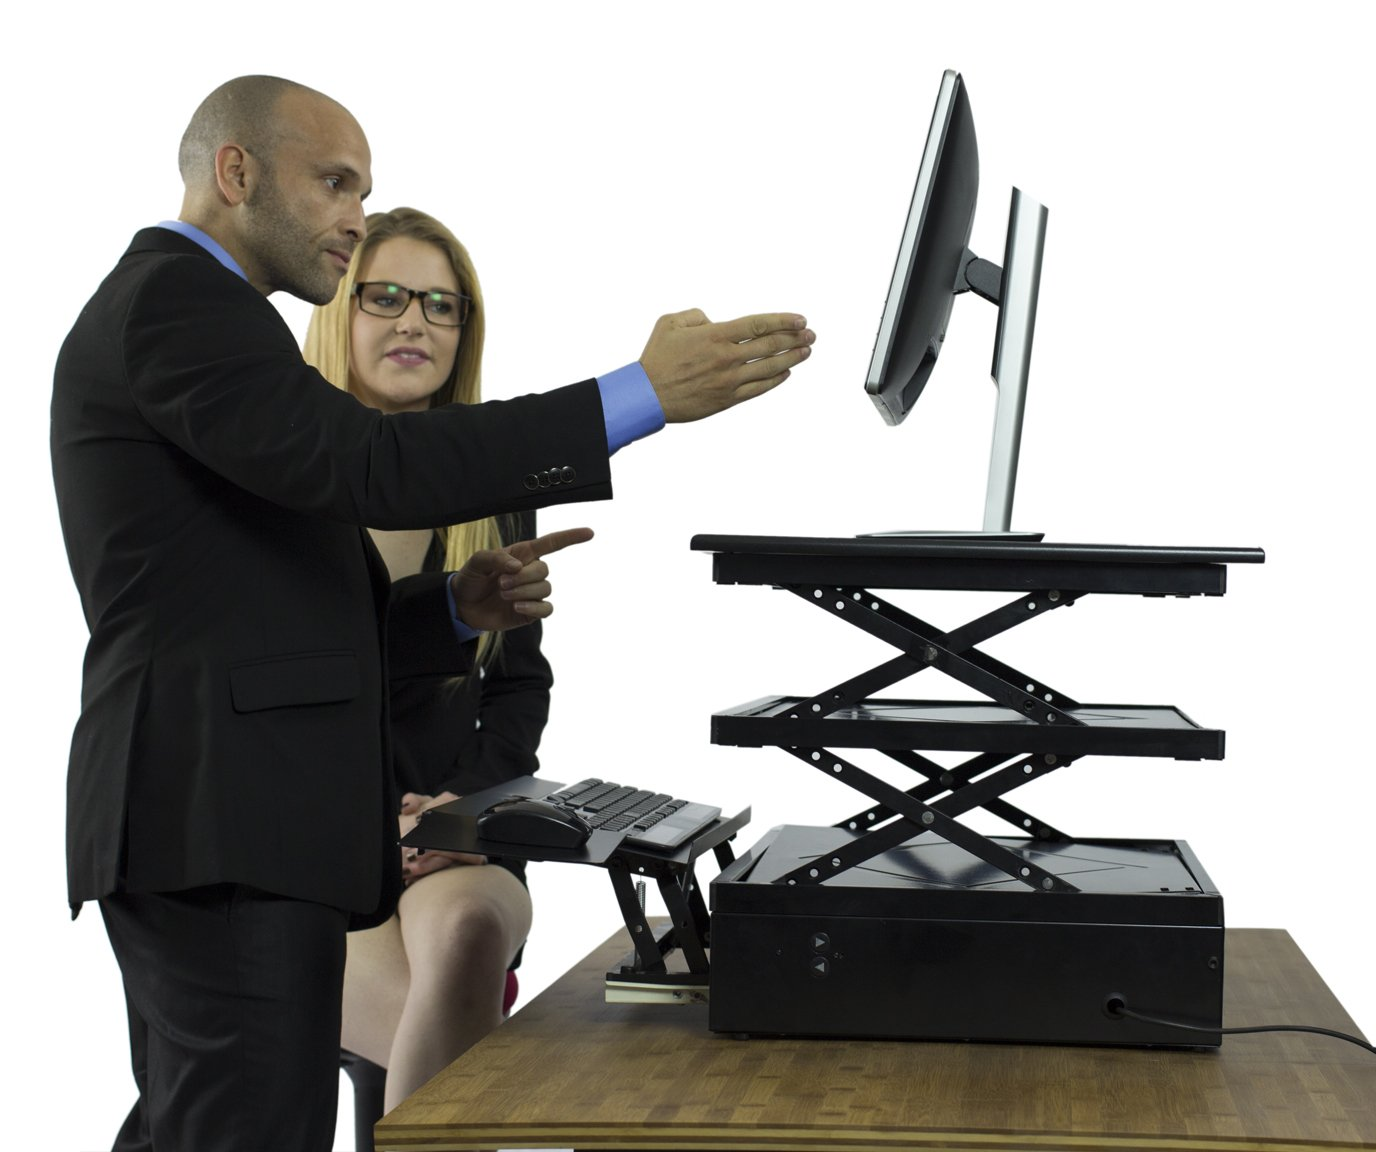 Uncaged Ergonomics Electric Change Desk, Height Adjustable Standing Desk Converter, Ergonomic Stand Up Desk Conversion Kit (CDE-b) by Uncaged Ergonomics (Image #8)